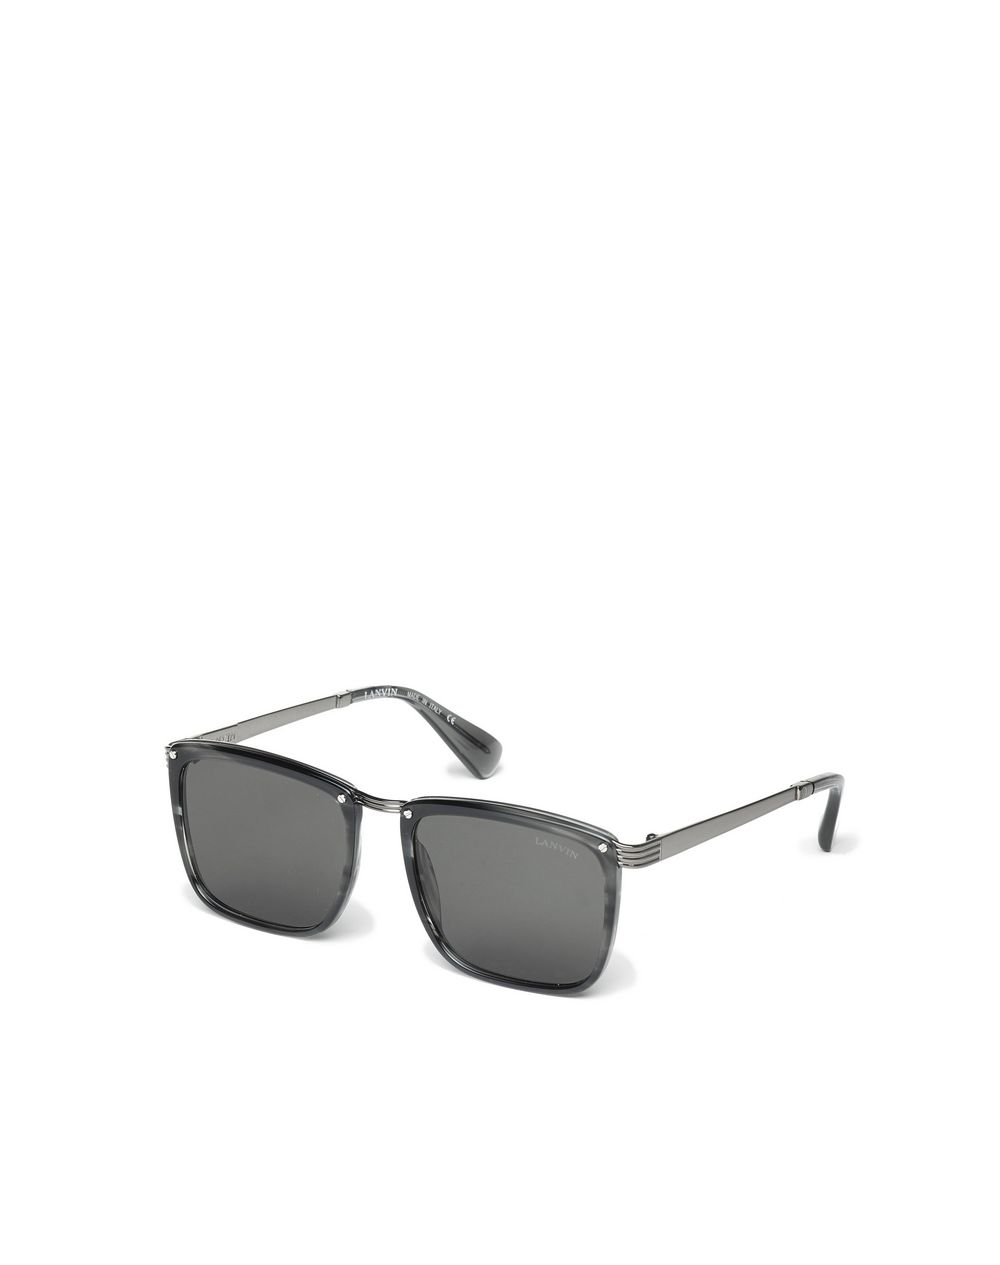 SQUARE SUNGLASSES - Lanvin